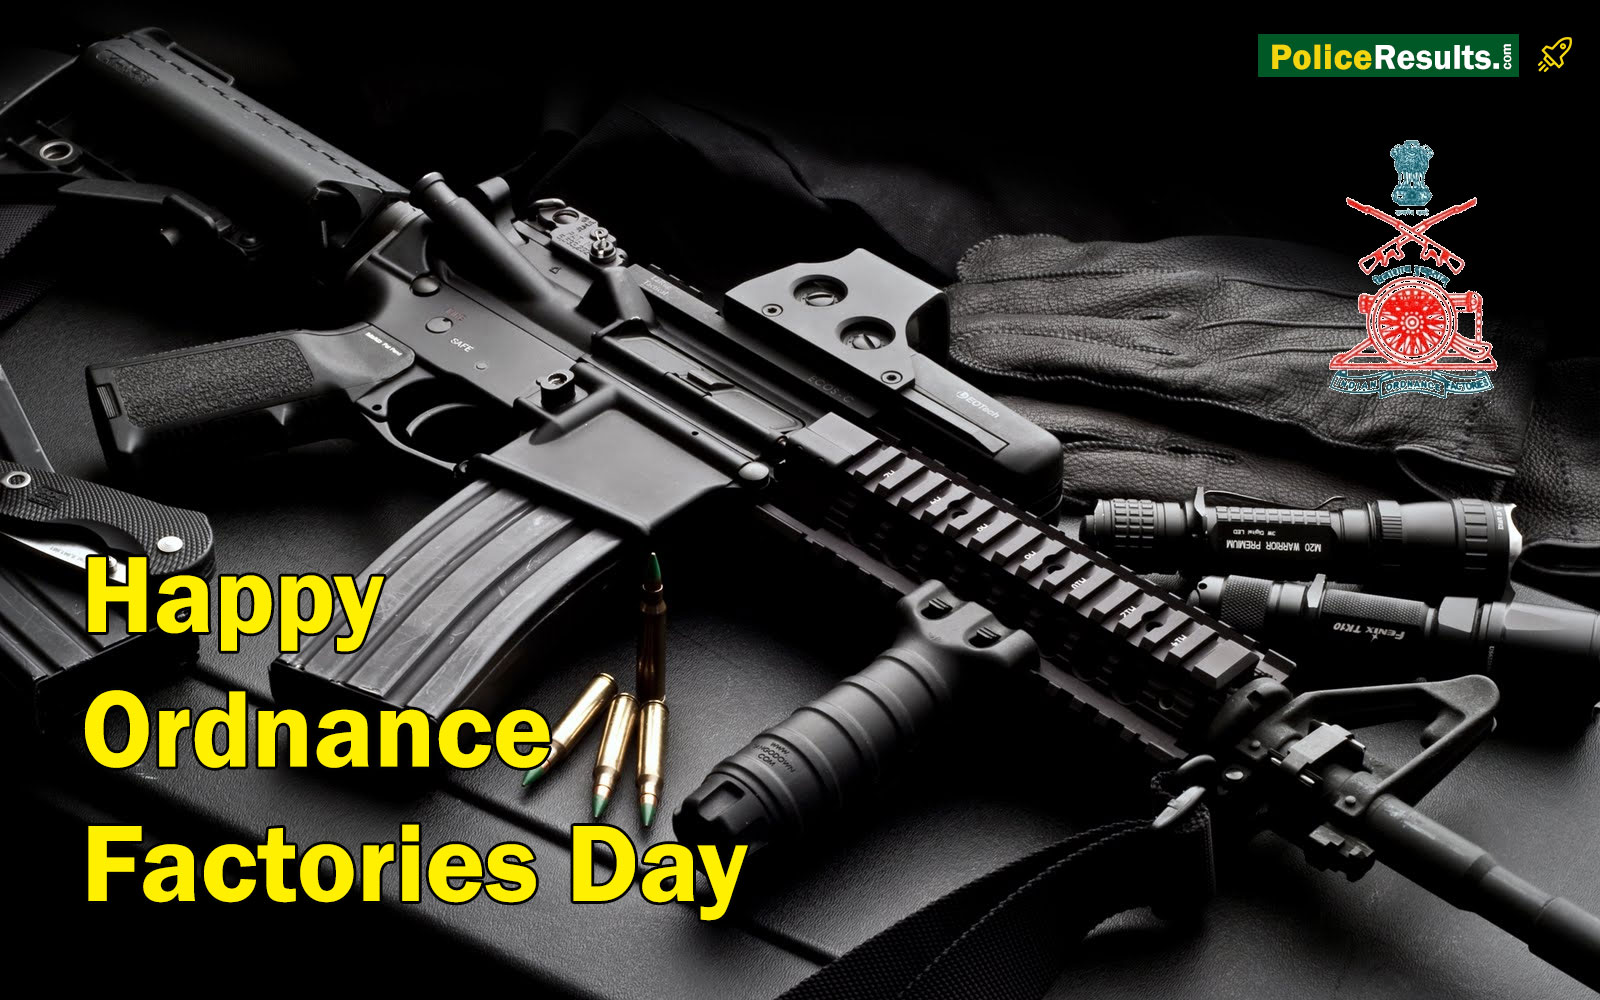 Ordnance Factories Day